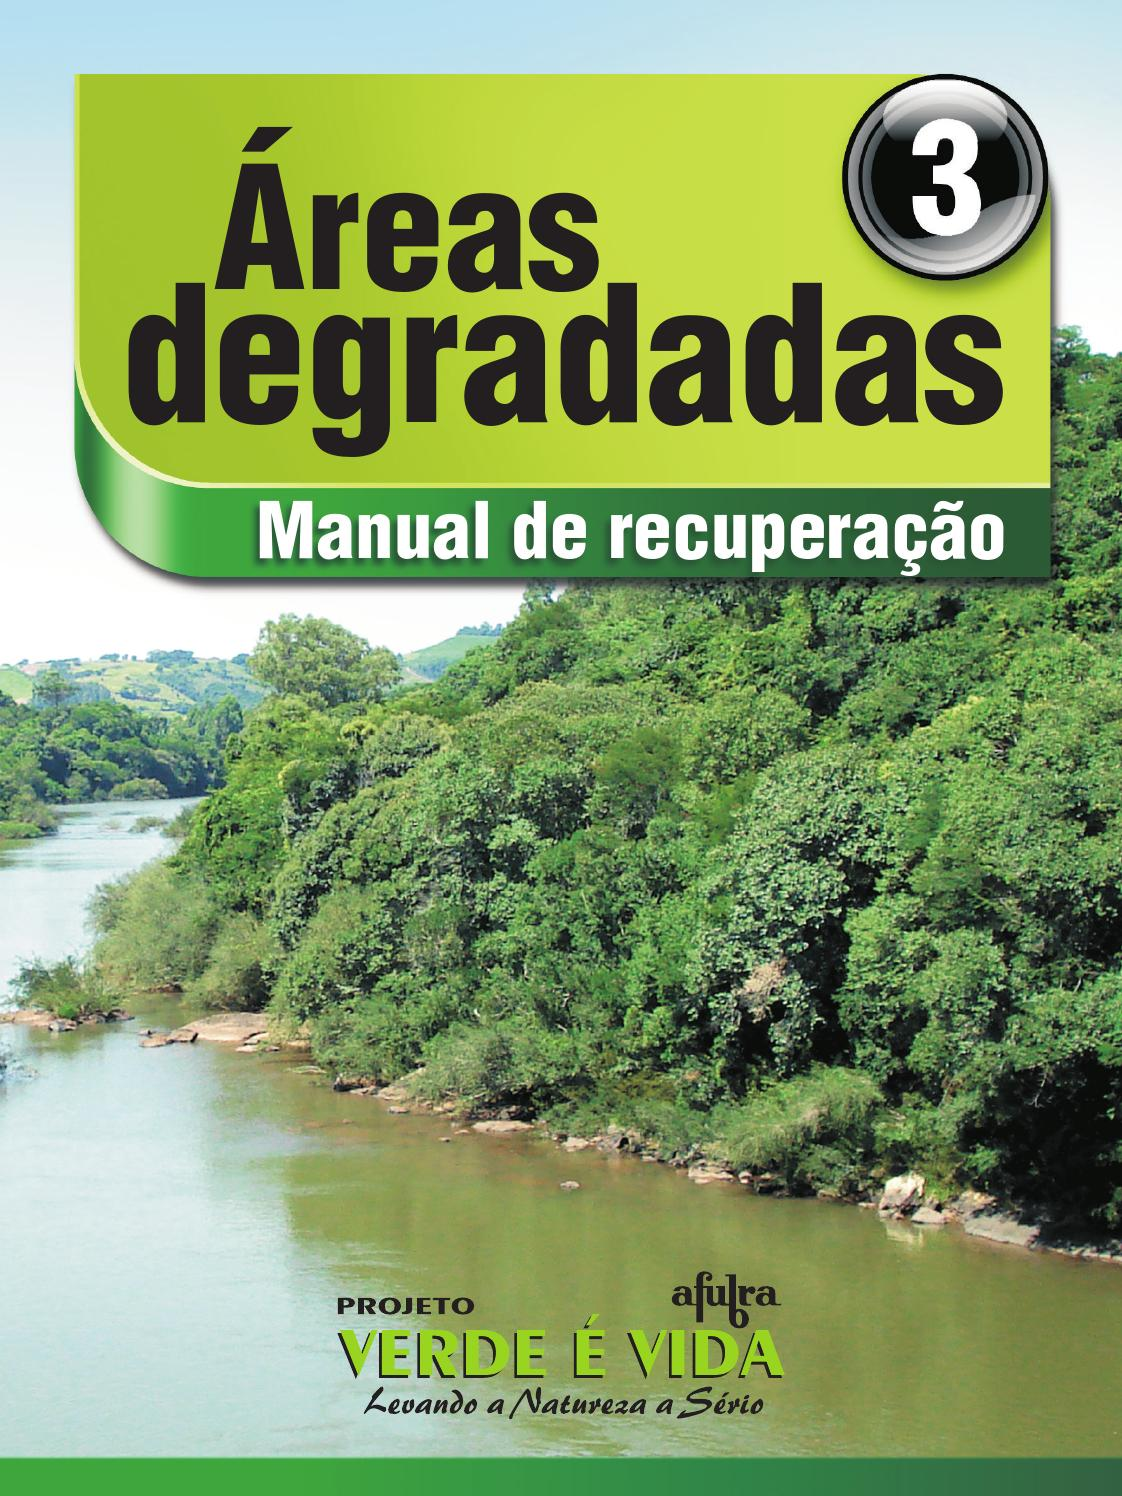 Reas degradadas manual de recupera o by afubra scs issuu for Manual de acuicultura pdf